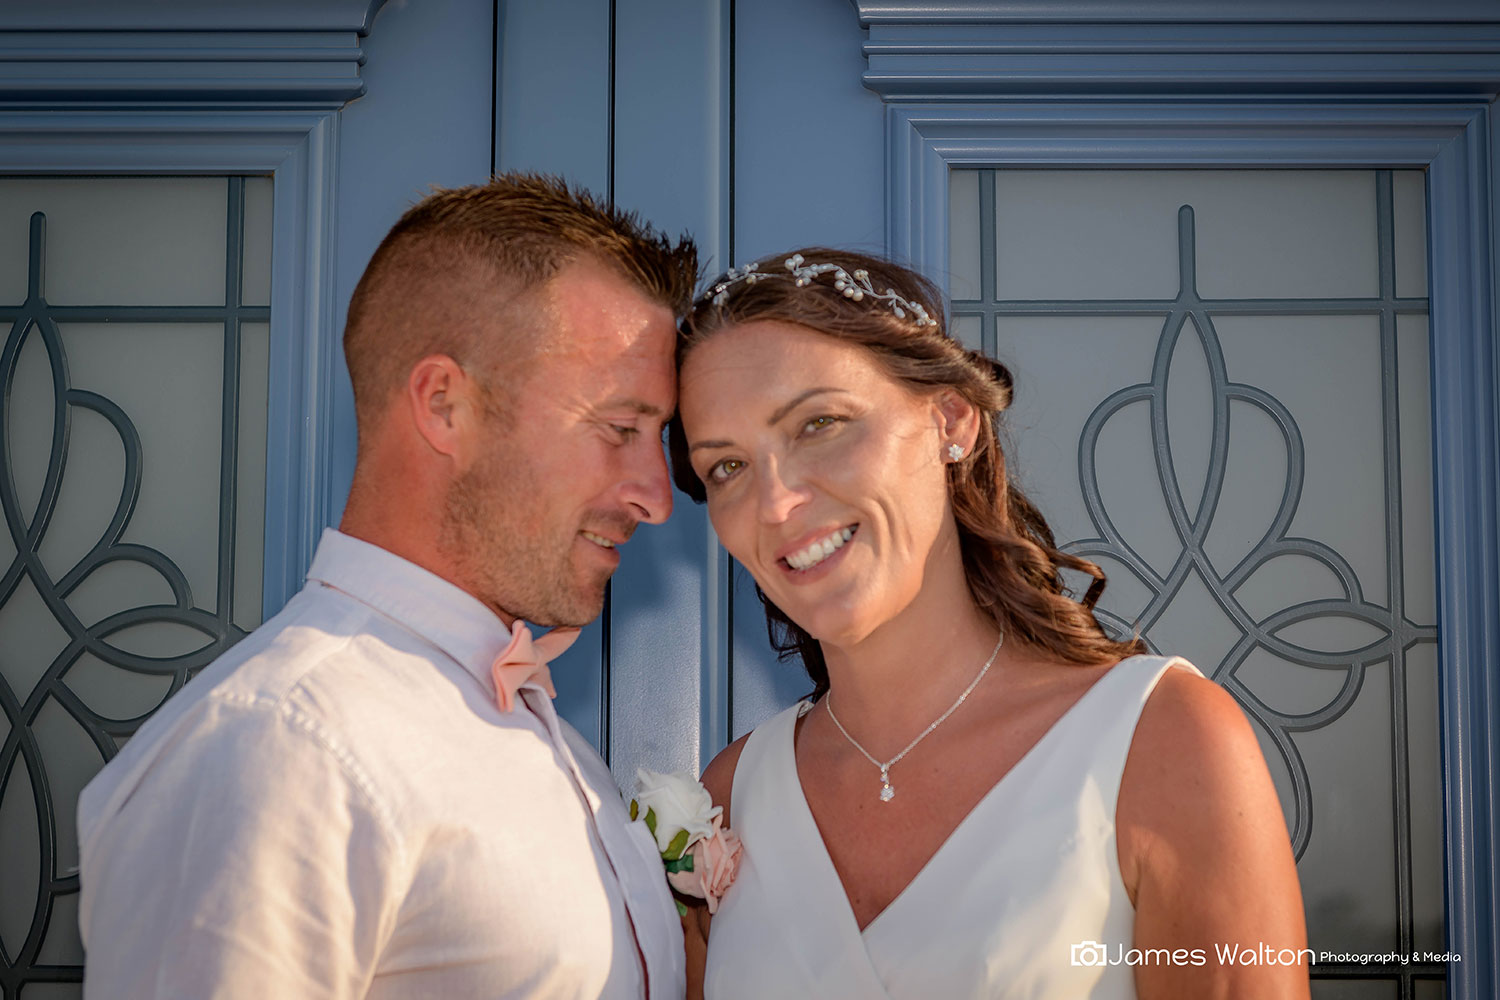 James is a lovely guy who makes you feel relaxed, he has caught some really lovely natural shots of our vow renewal as well as taking requested photos we asked for. Would definitely recommend these guys 😀 thanks again james xx - Mr & Mrs Pickett Vow renewal 5 September 2019